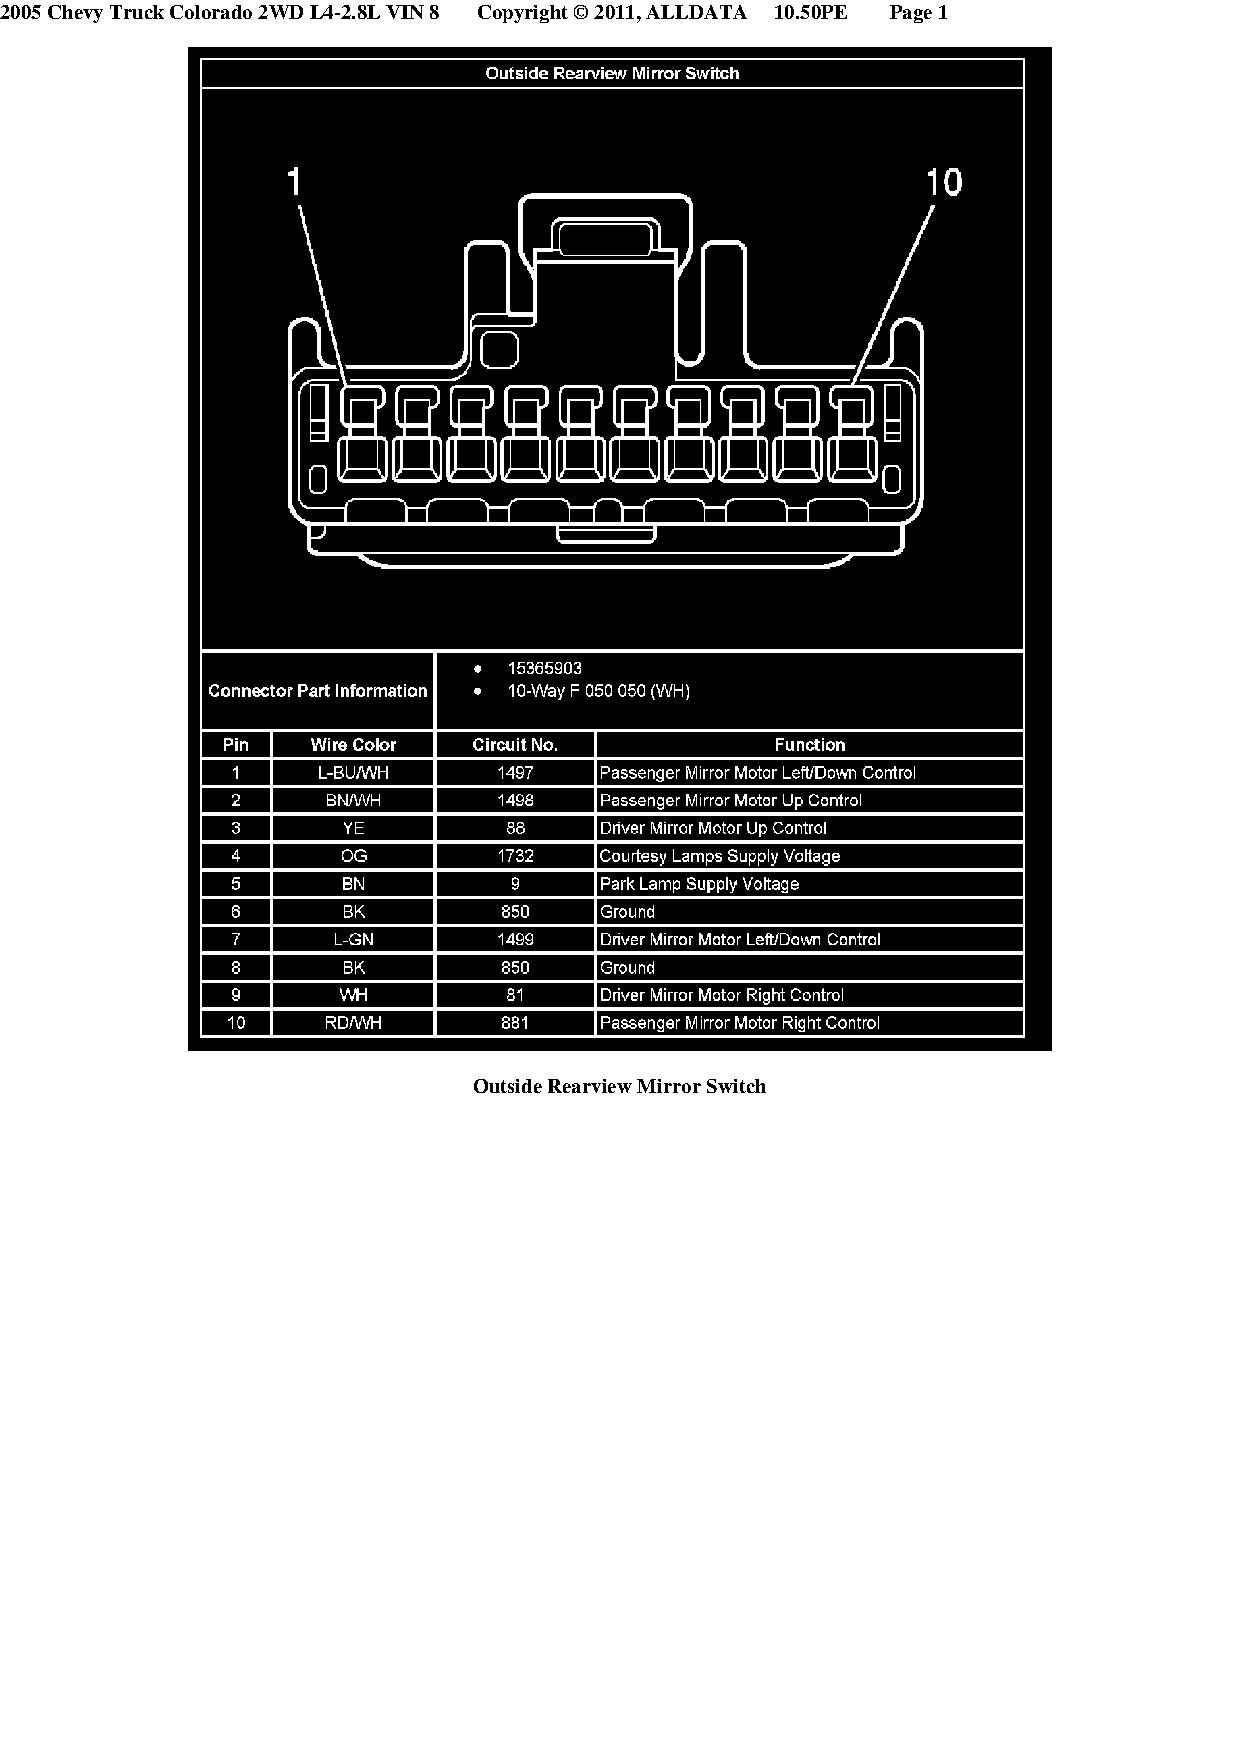 Wiring Diagram 2018 Colorado Electric Lock - Trusted Wiring Diagram •